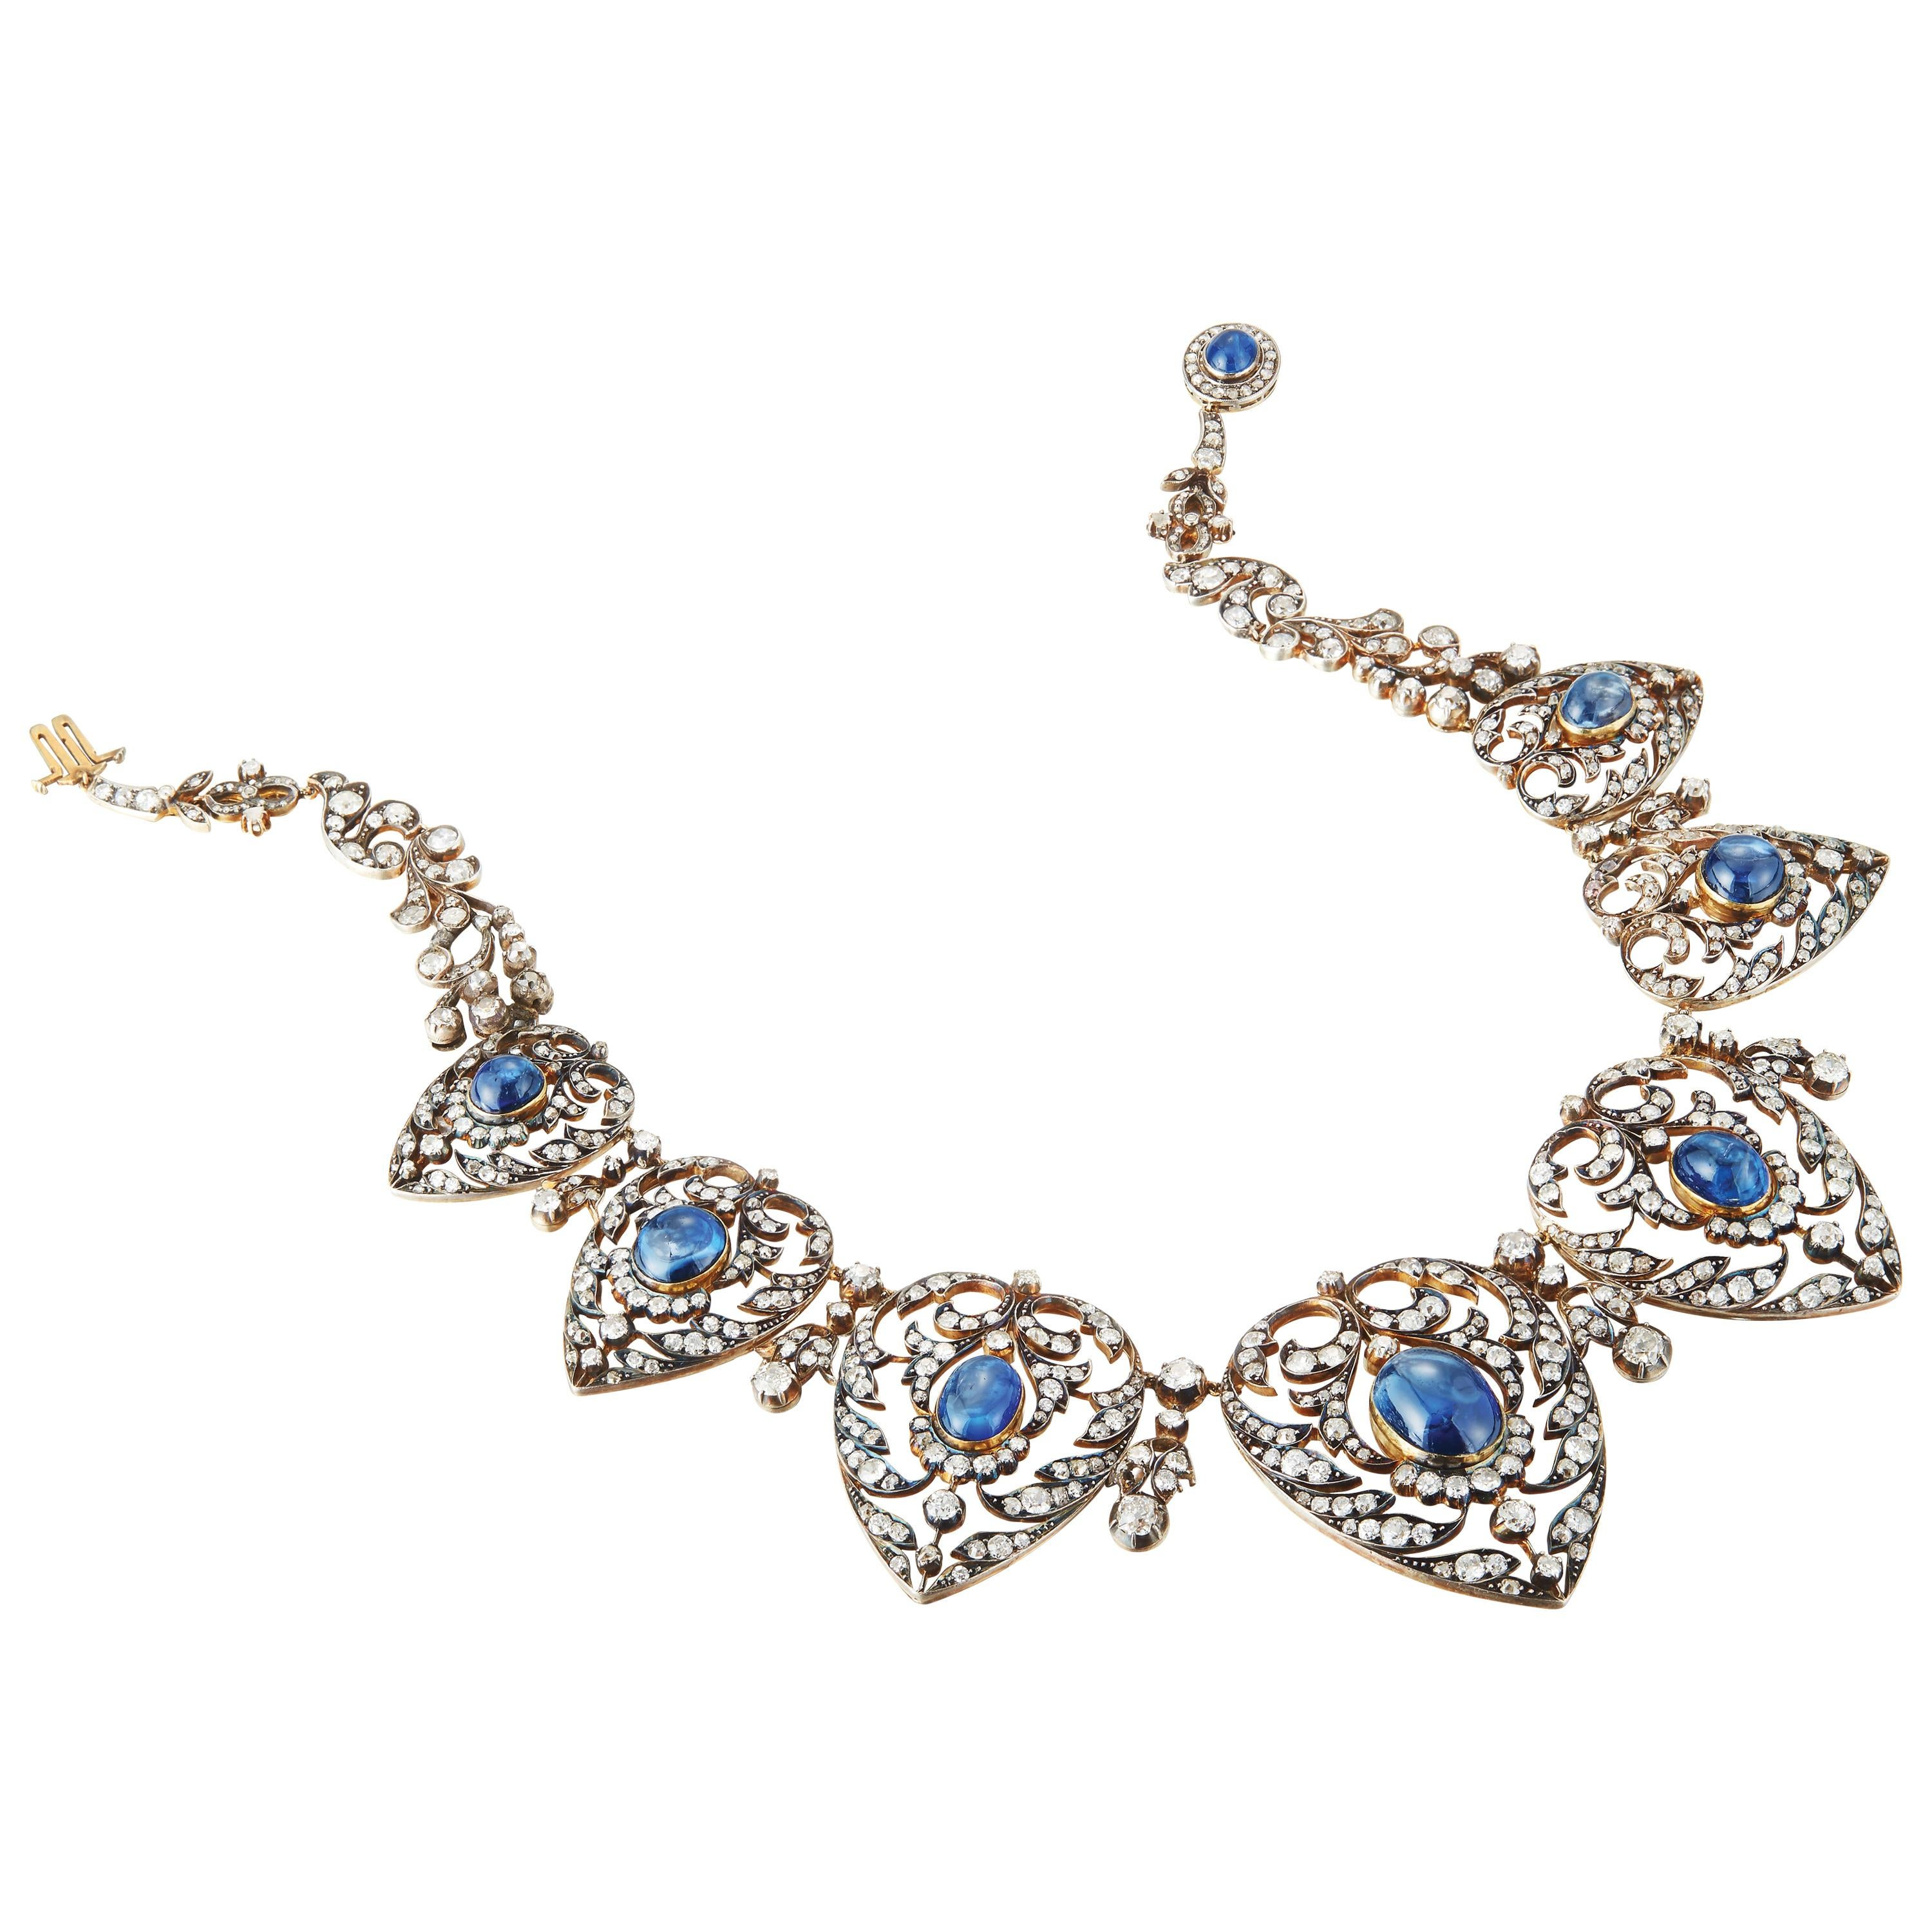 Victorian Sapphire and Diamond Necklace